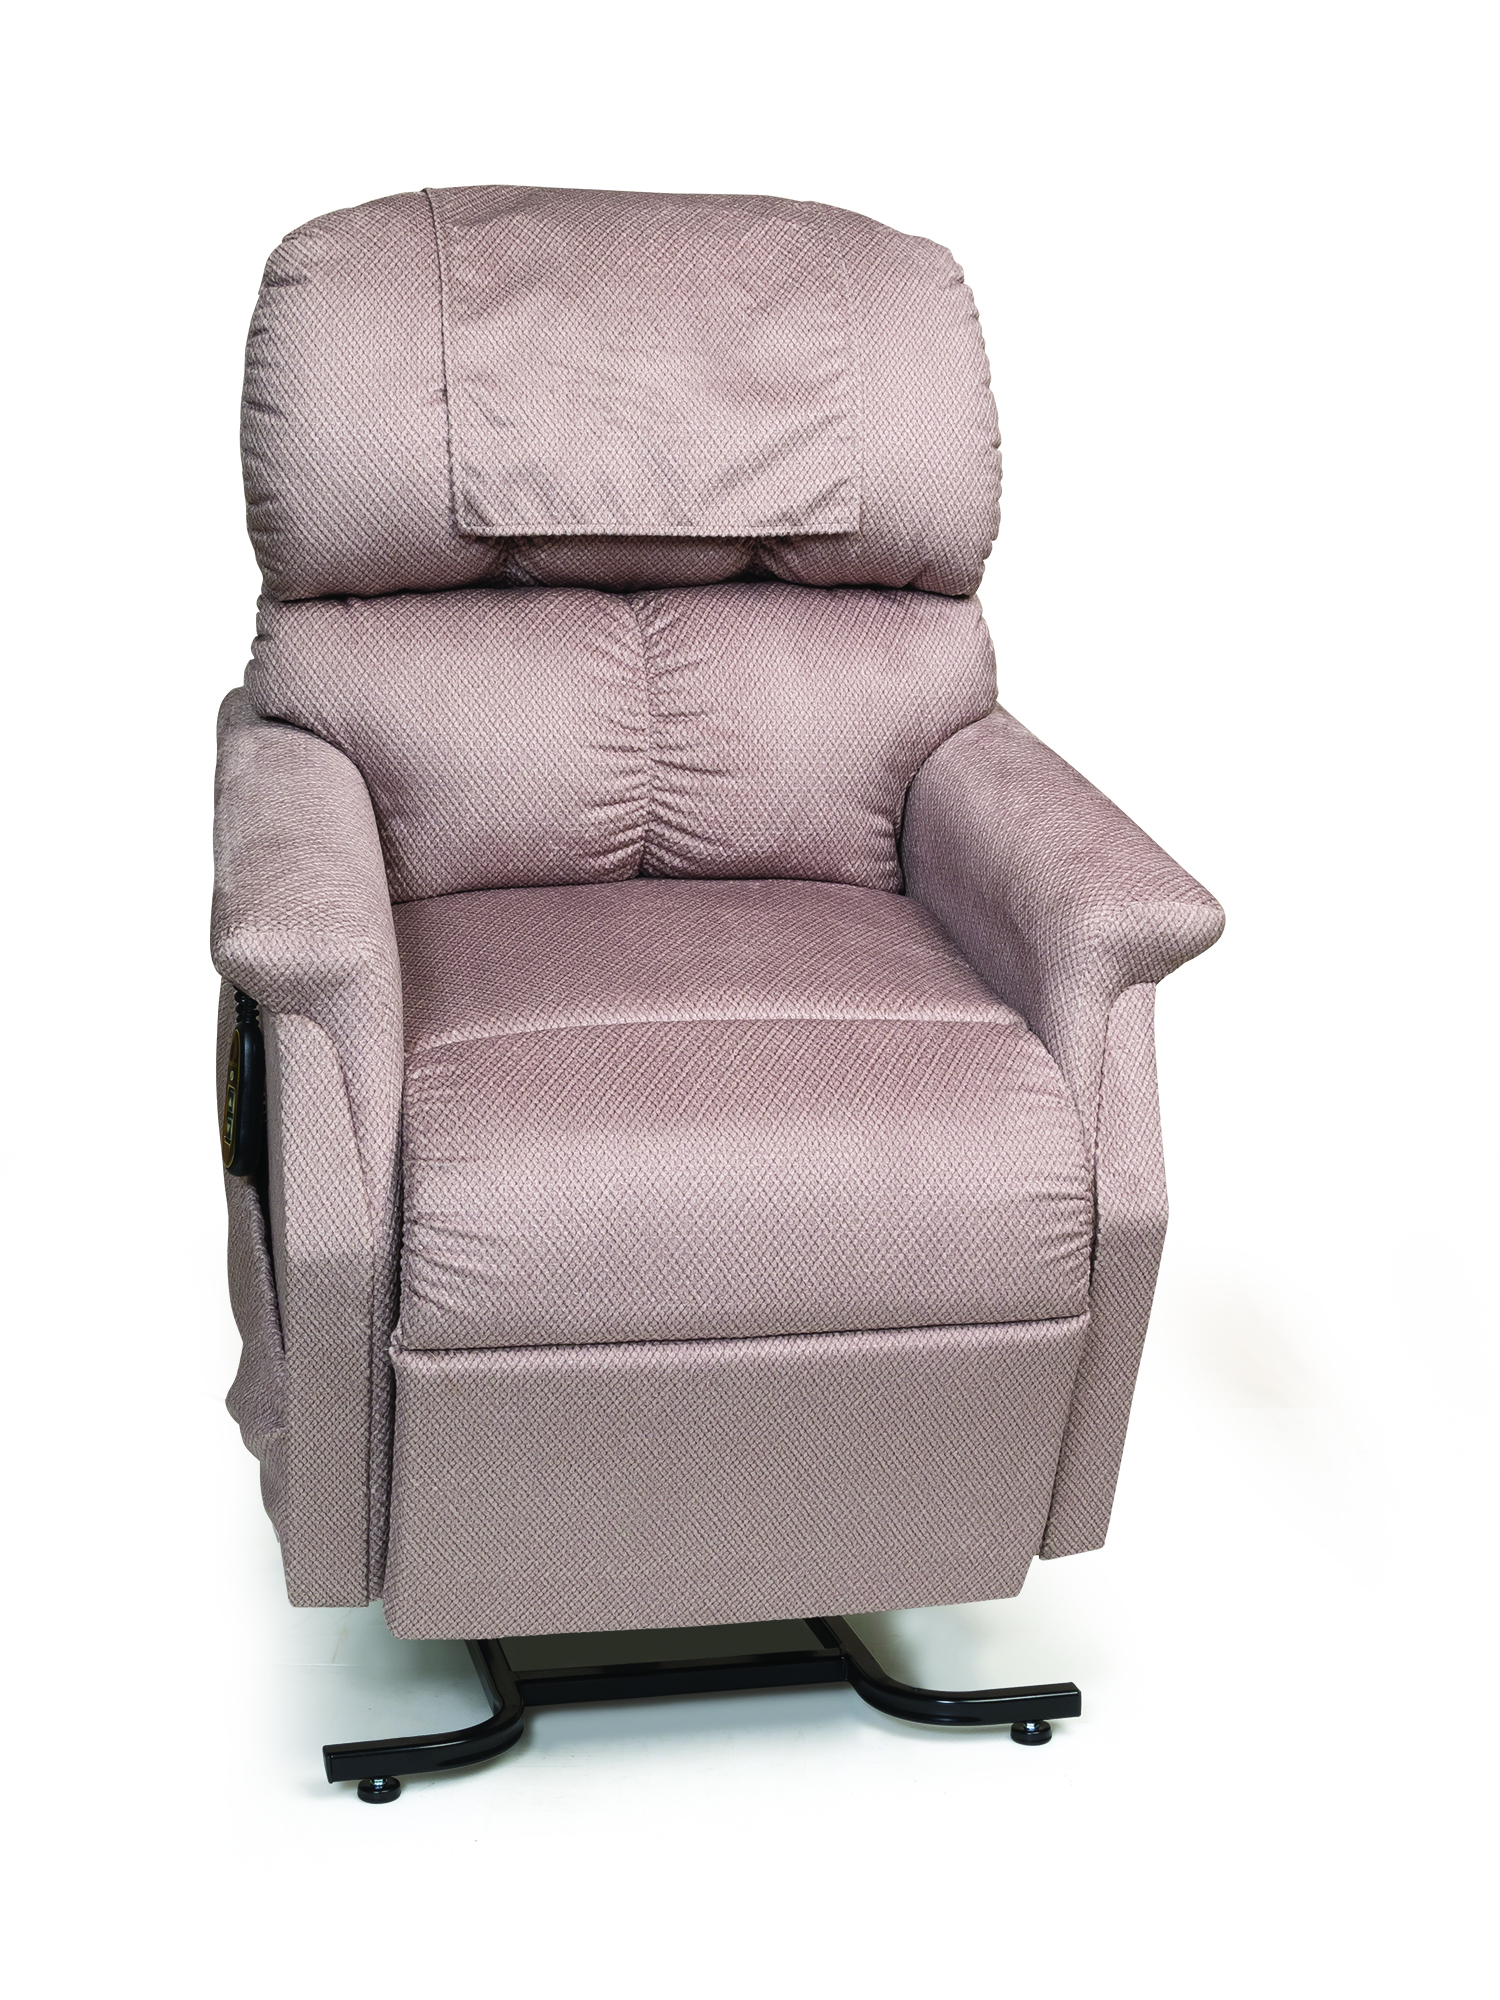 Photo of Golden Technologies Comforter Lift Chair, Size Small